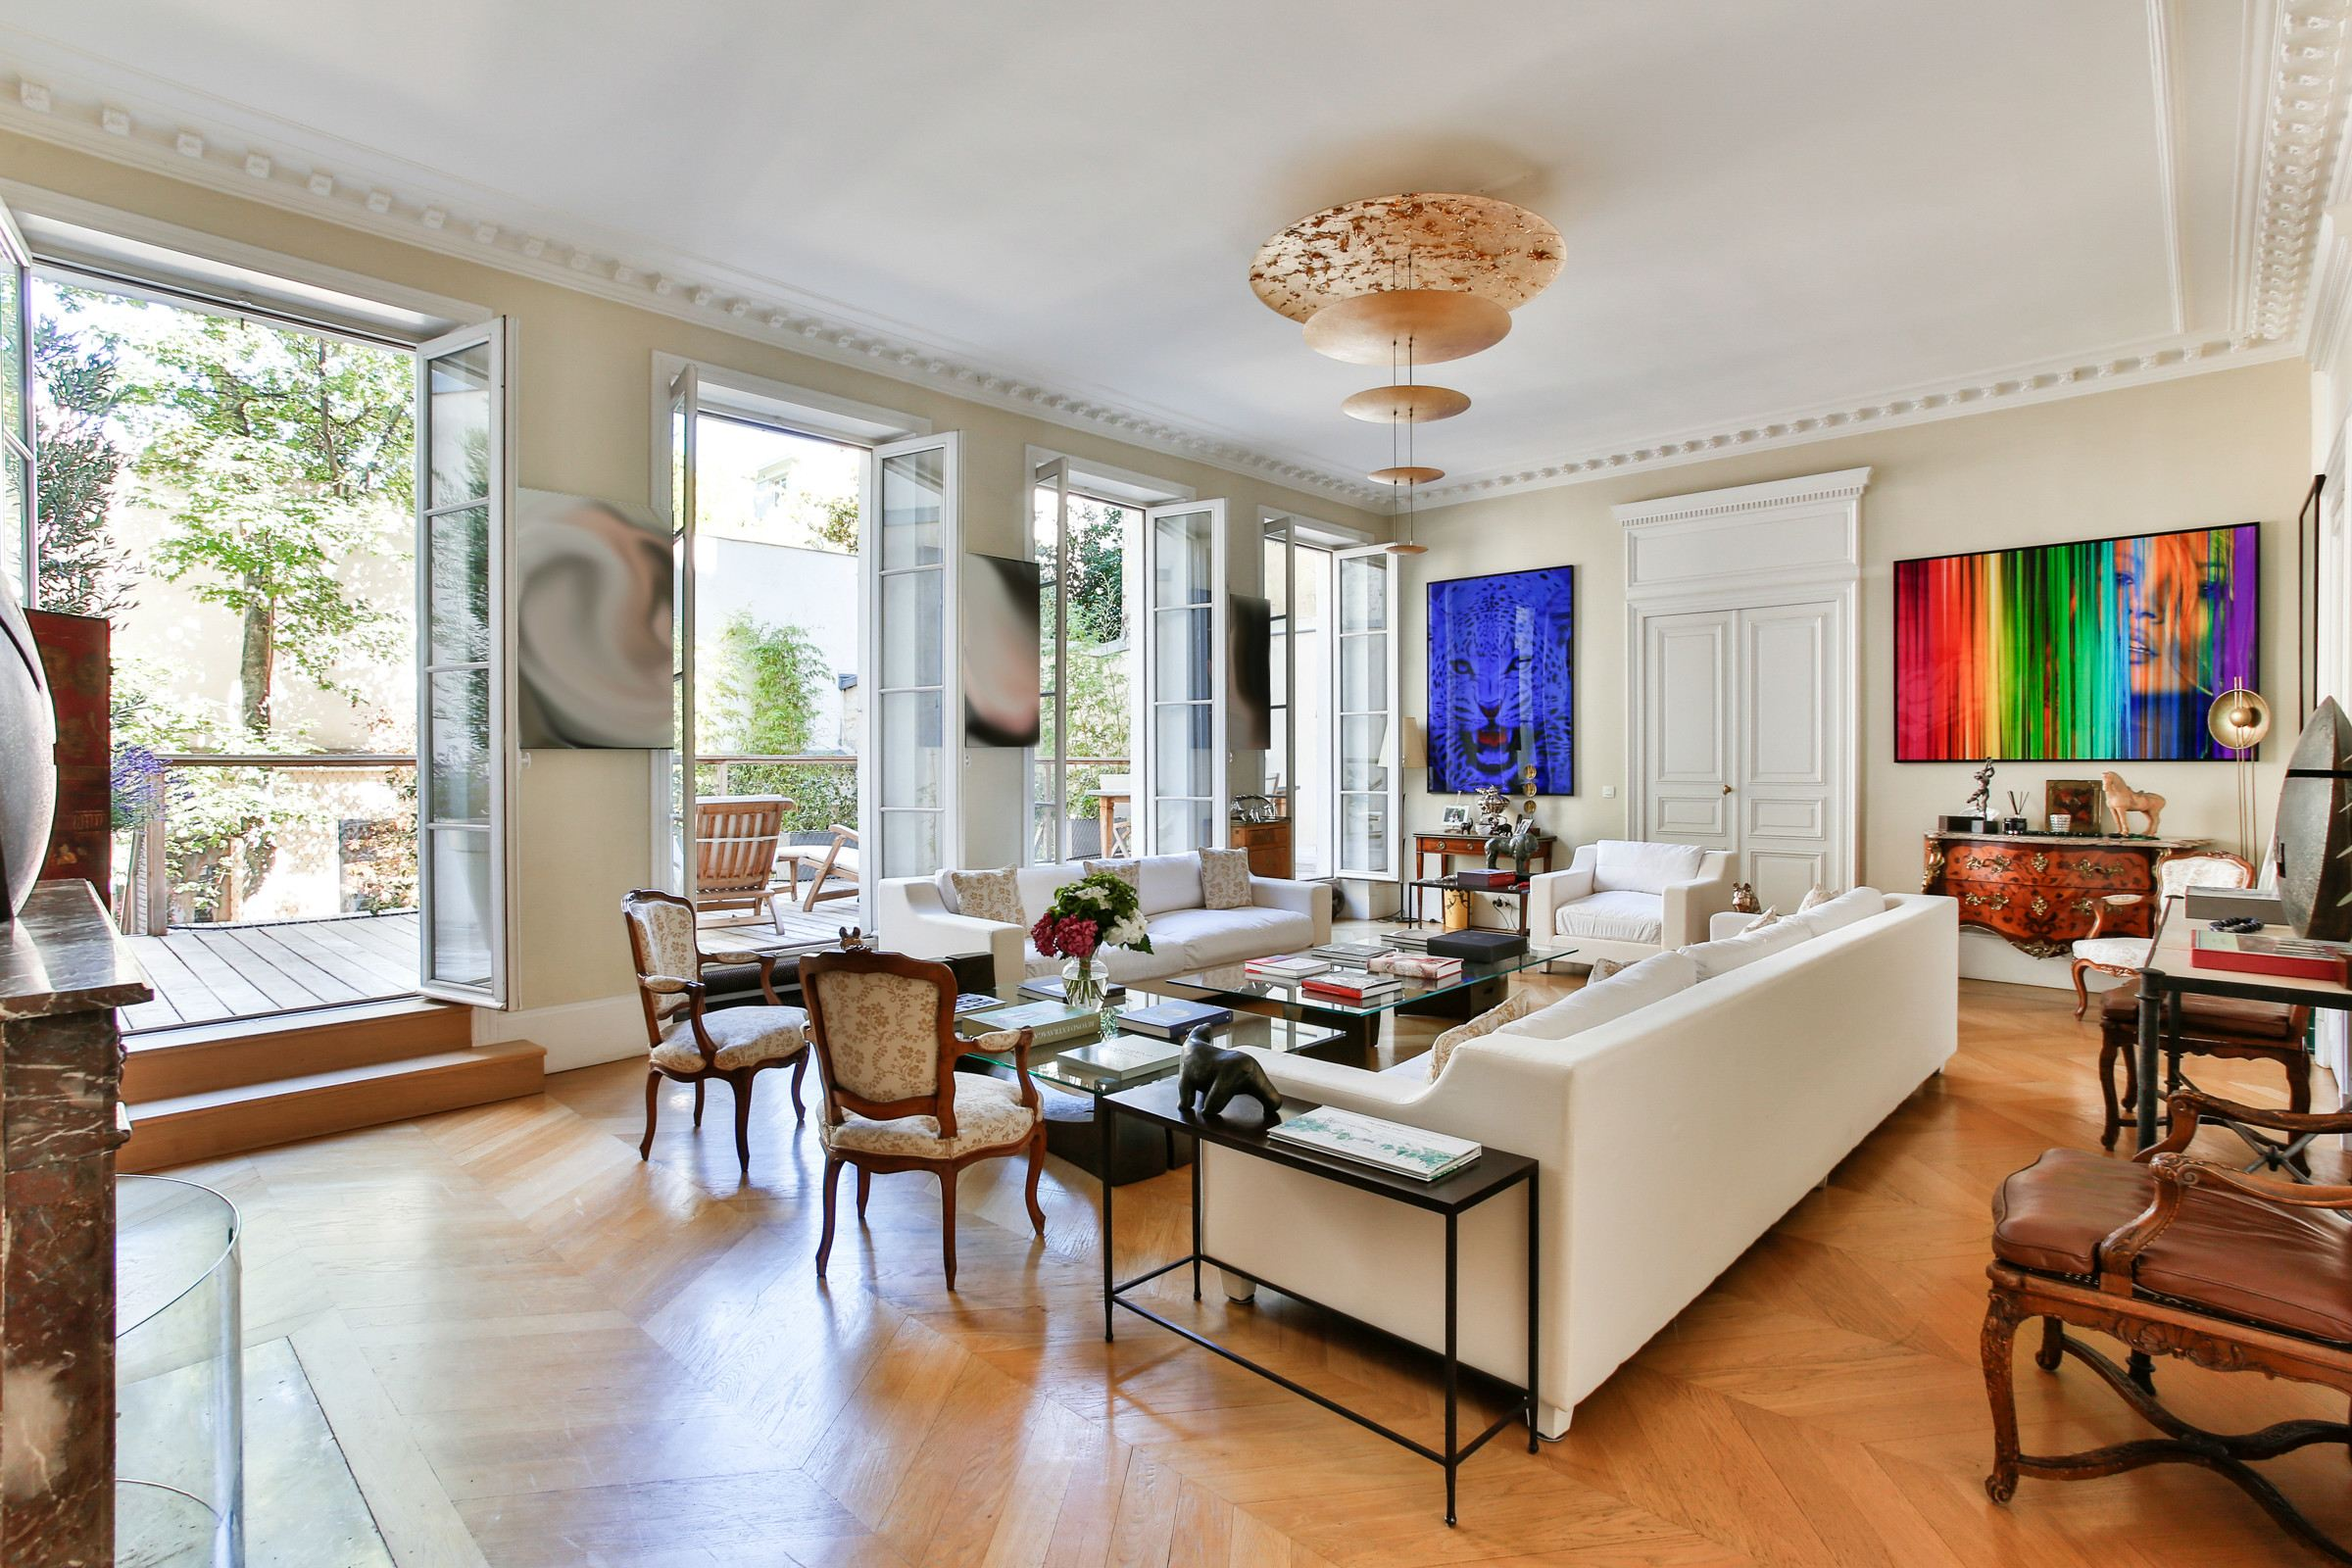 Property For Sale at Paris 8 - Fbg-Saint-Honoré. Private mansion 420 sq.m.. Exceptional amenities